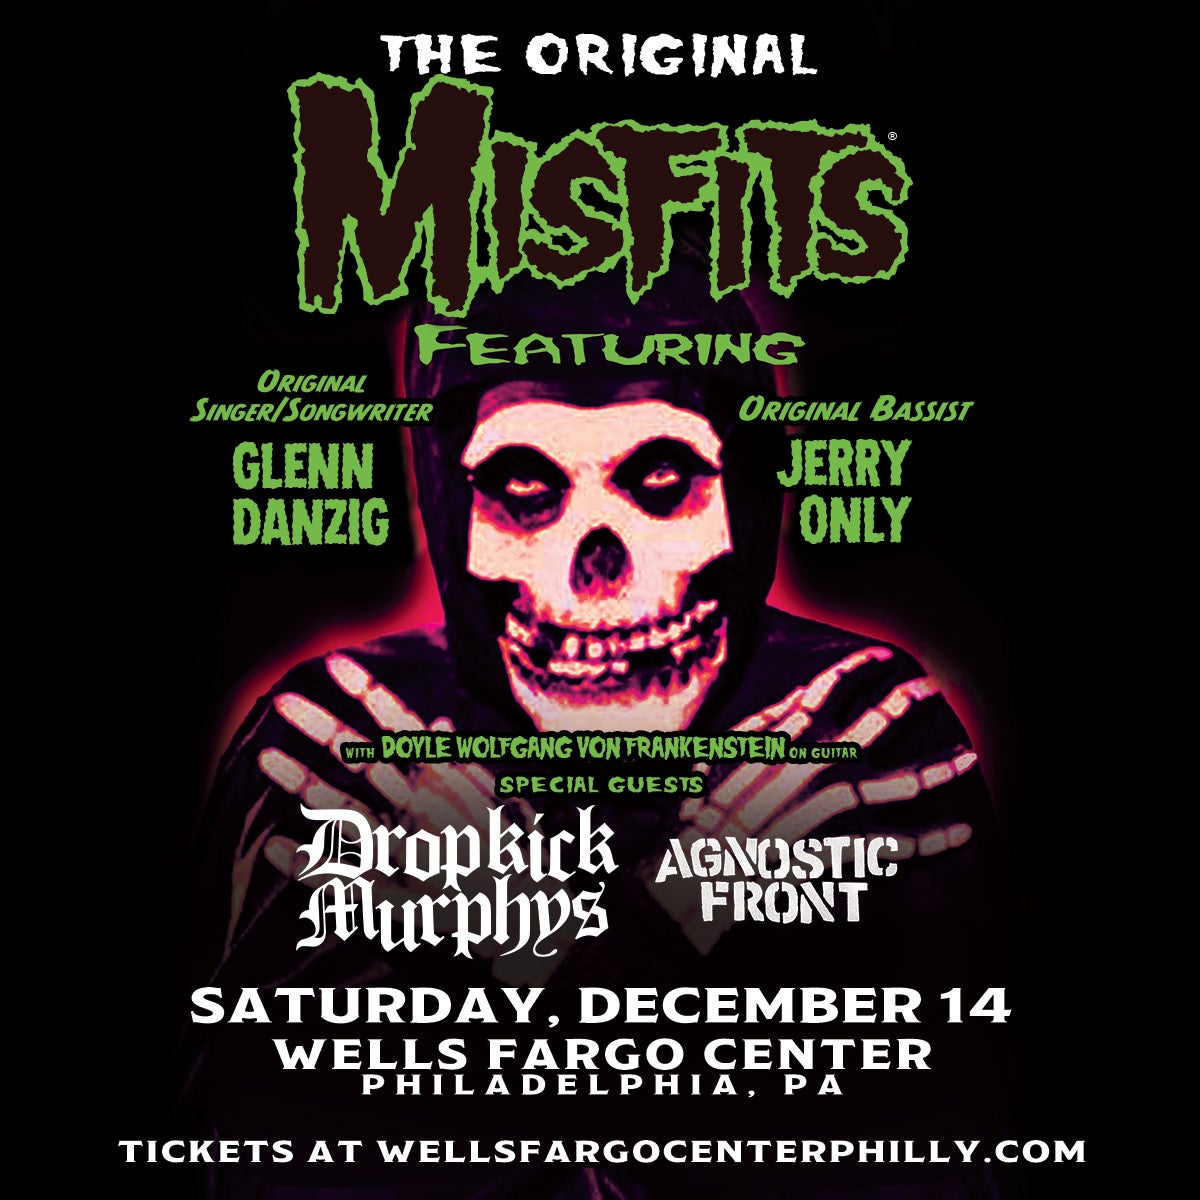 Punk Icons The Original Misfits Featuring Glenn Danzig And Jerry Only To Perform At Wells Fargo Center On Saturday, December 14